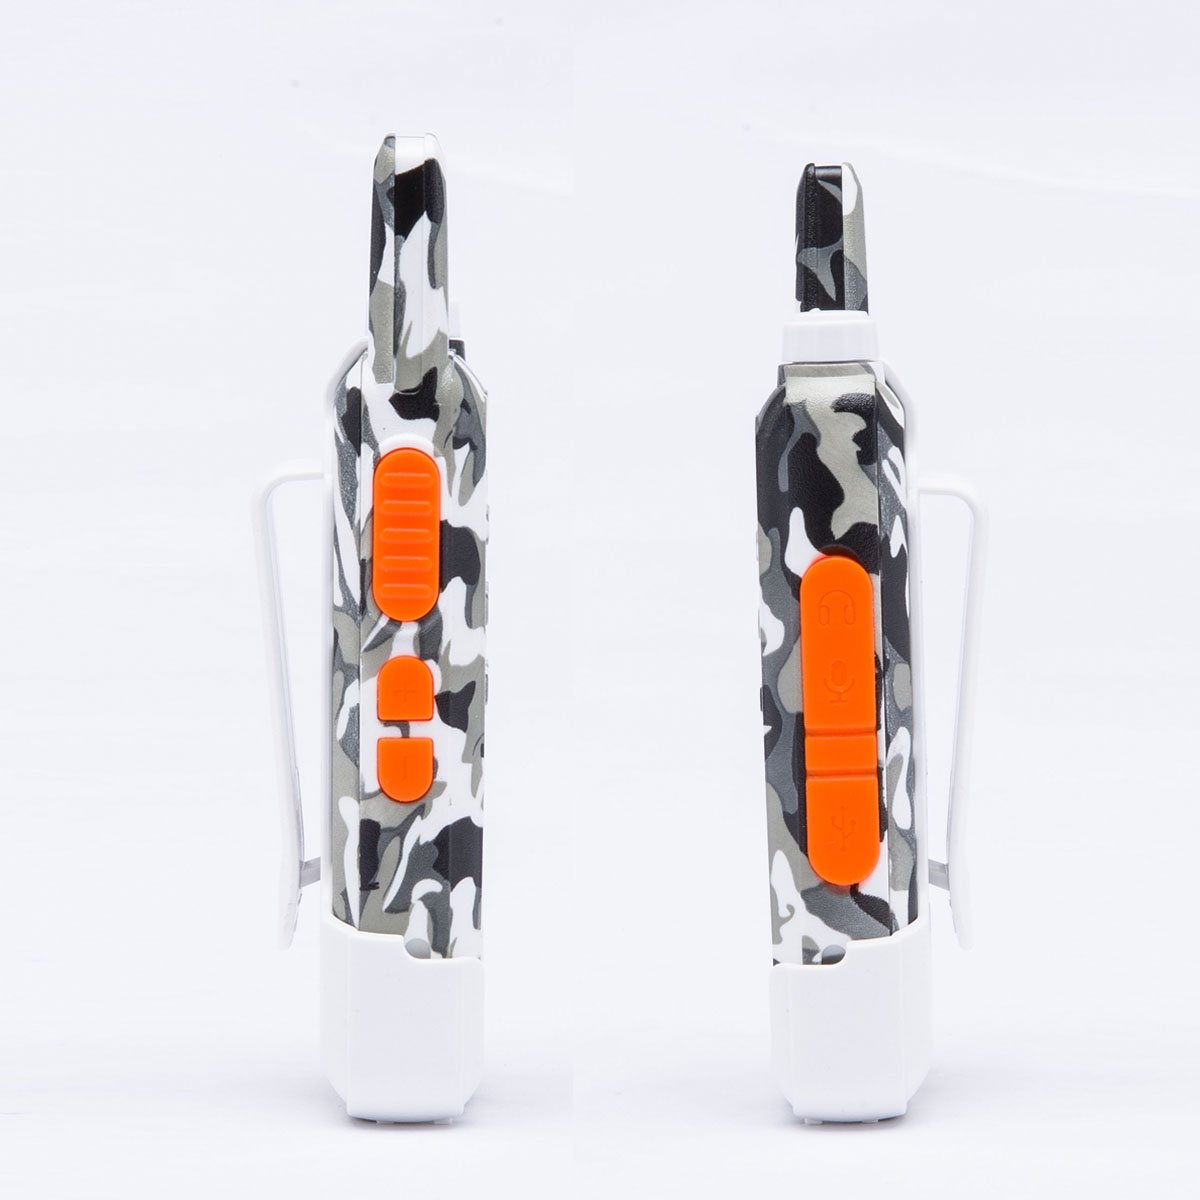 2 Way Radio Walkie Talkies Long Range for Outdoor Camping Hiking Hunting Activities LT-316 Military Camo Mini Uhf Rechargeable Two-Way Radio 5-10 Miles Back to School Ideal Gifts by LUITON (2 Pack) by LUITON (Image #3)